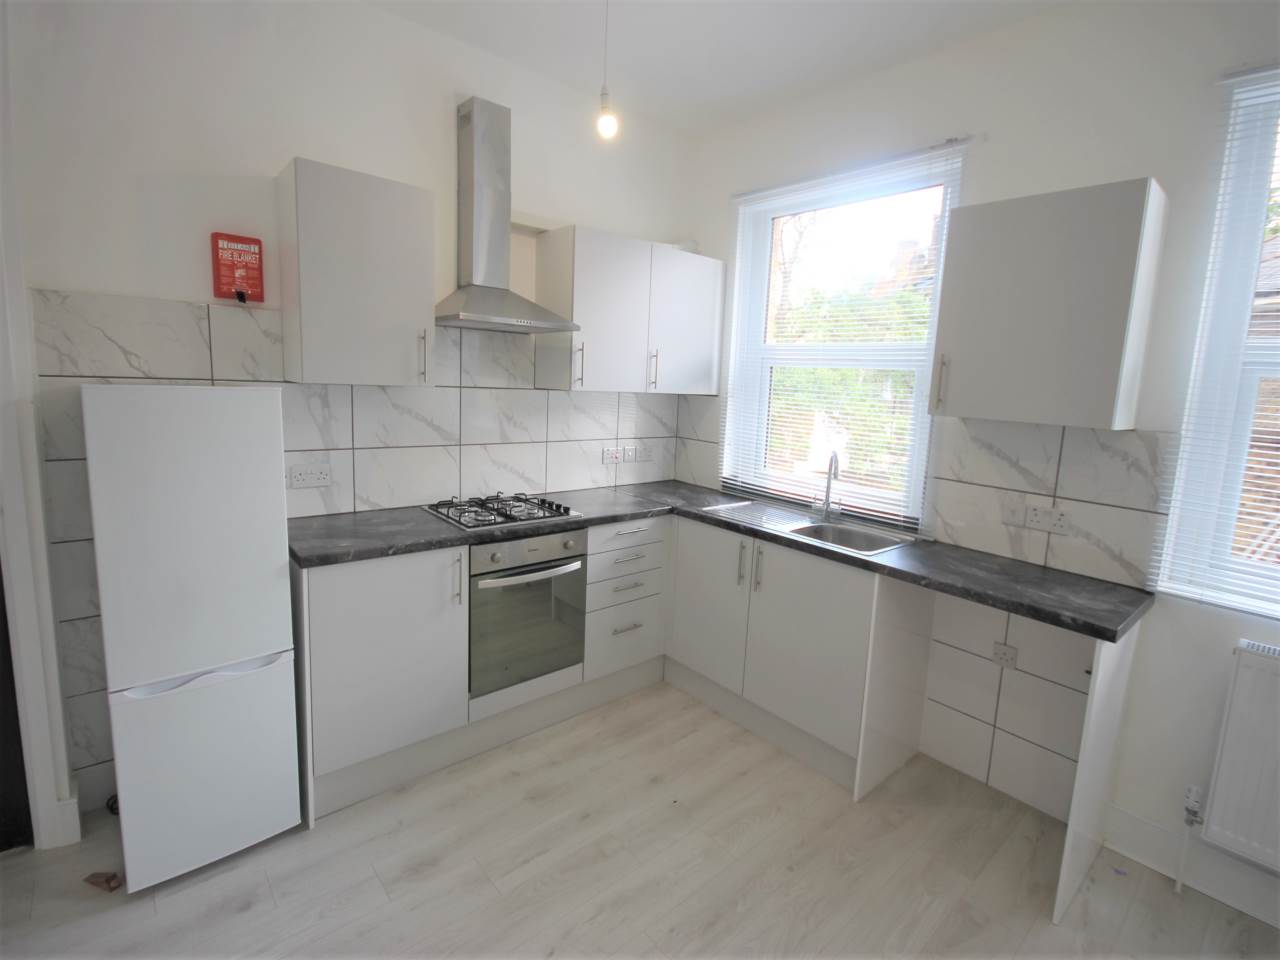 2 bed flat to rent in Cricketfield Road, Hackney, E5 8